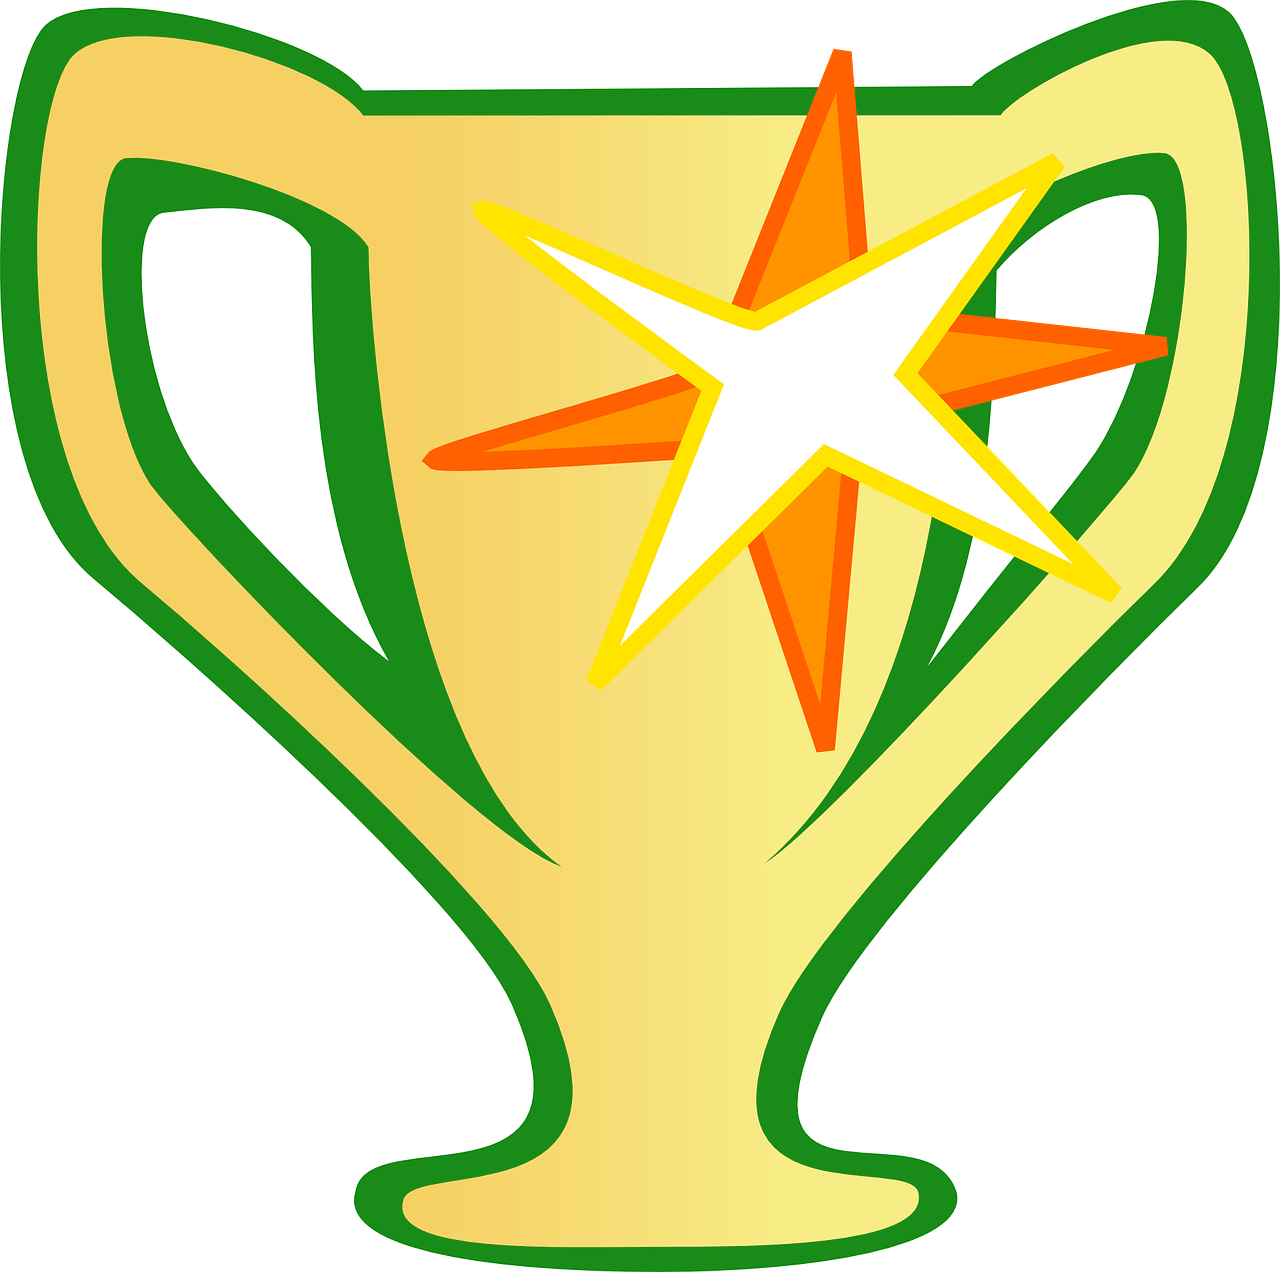 trophy,award,gold,shiny,cup,prize,winner,achievement,success,accomplishment,free vector graphics,free pictures, free photos, free images, royalty free, free illustrations, public domain